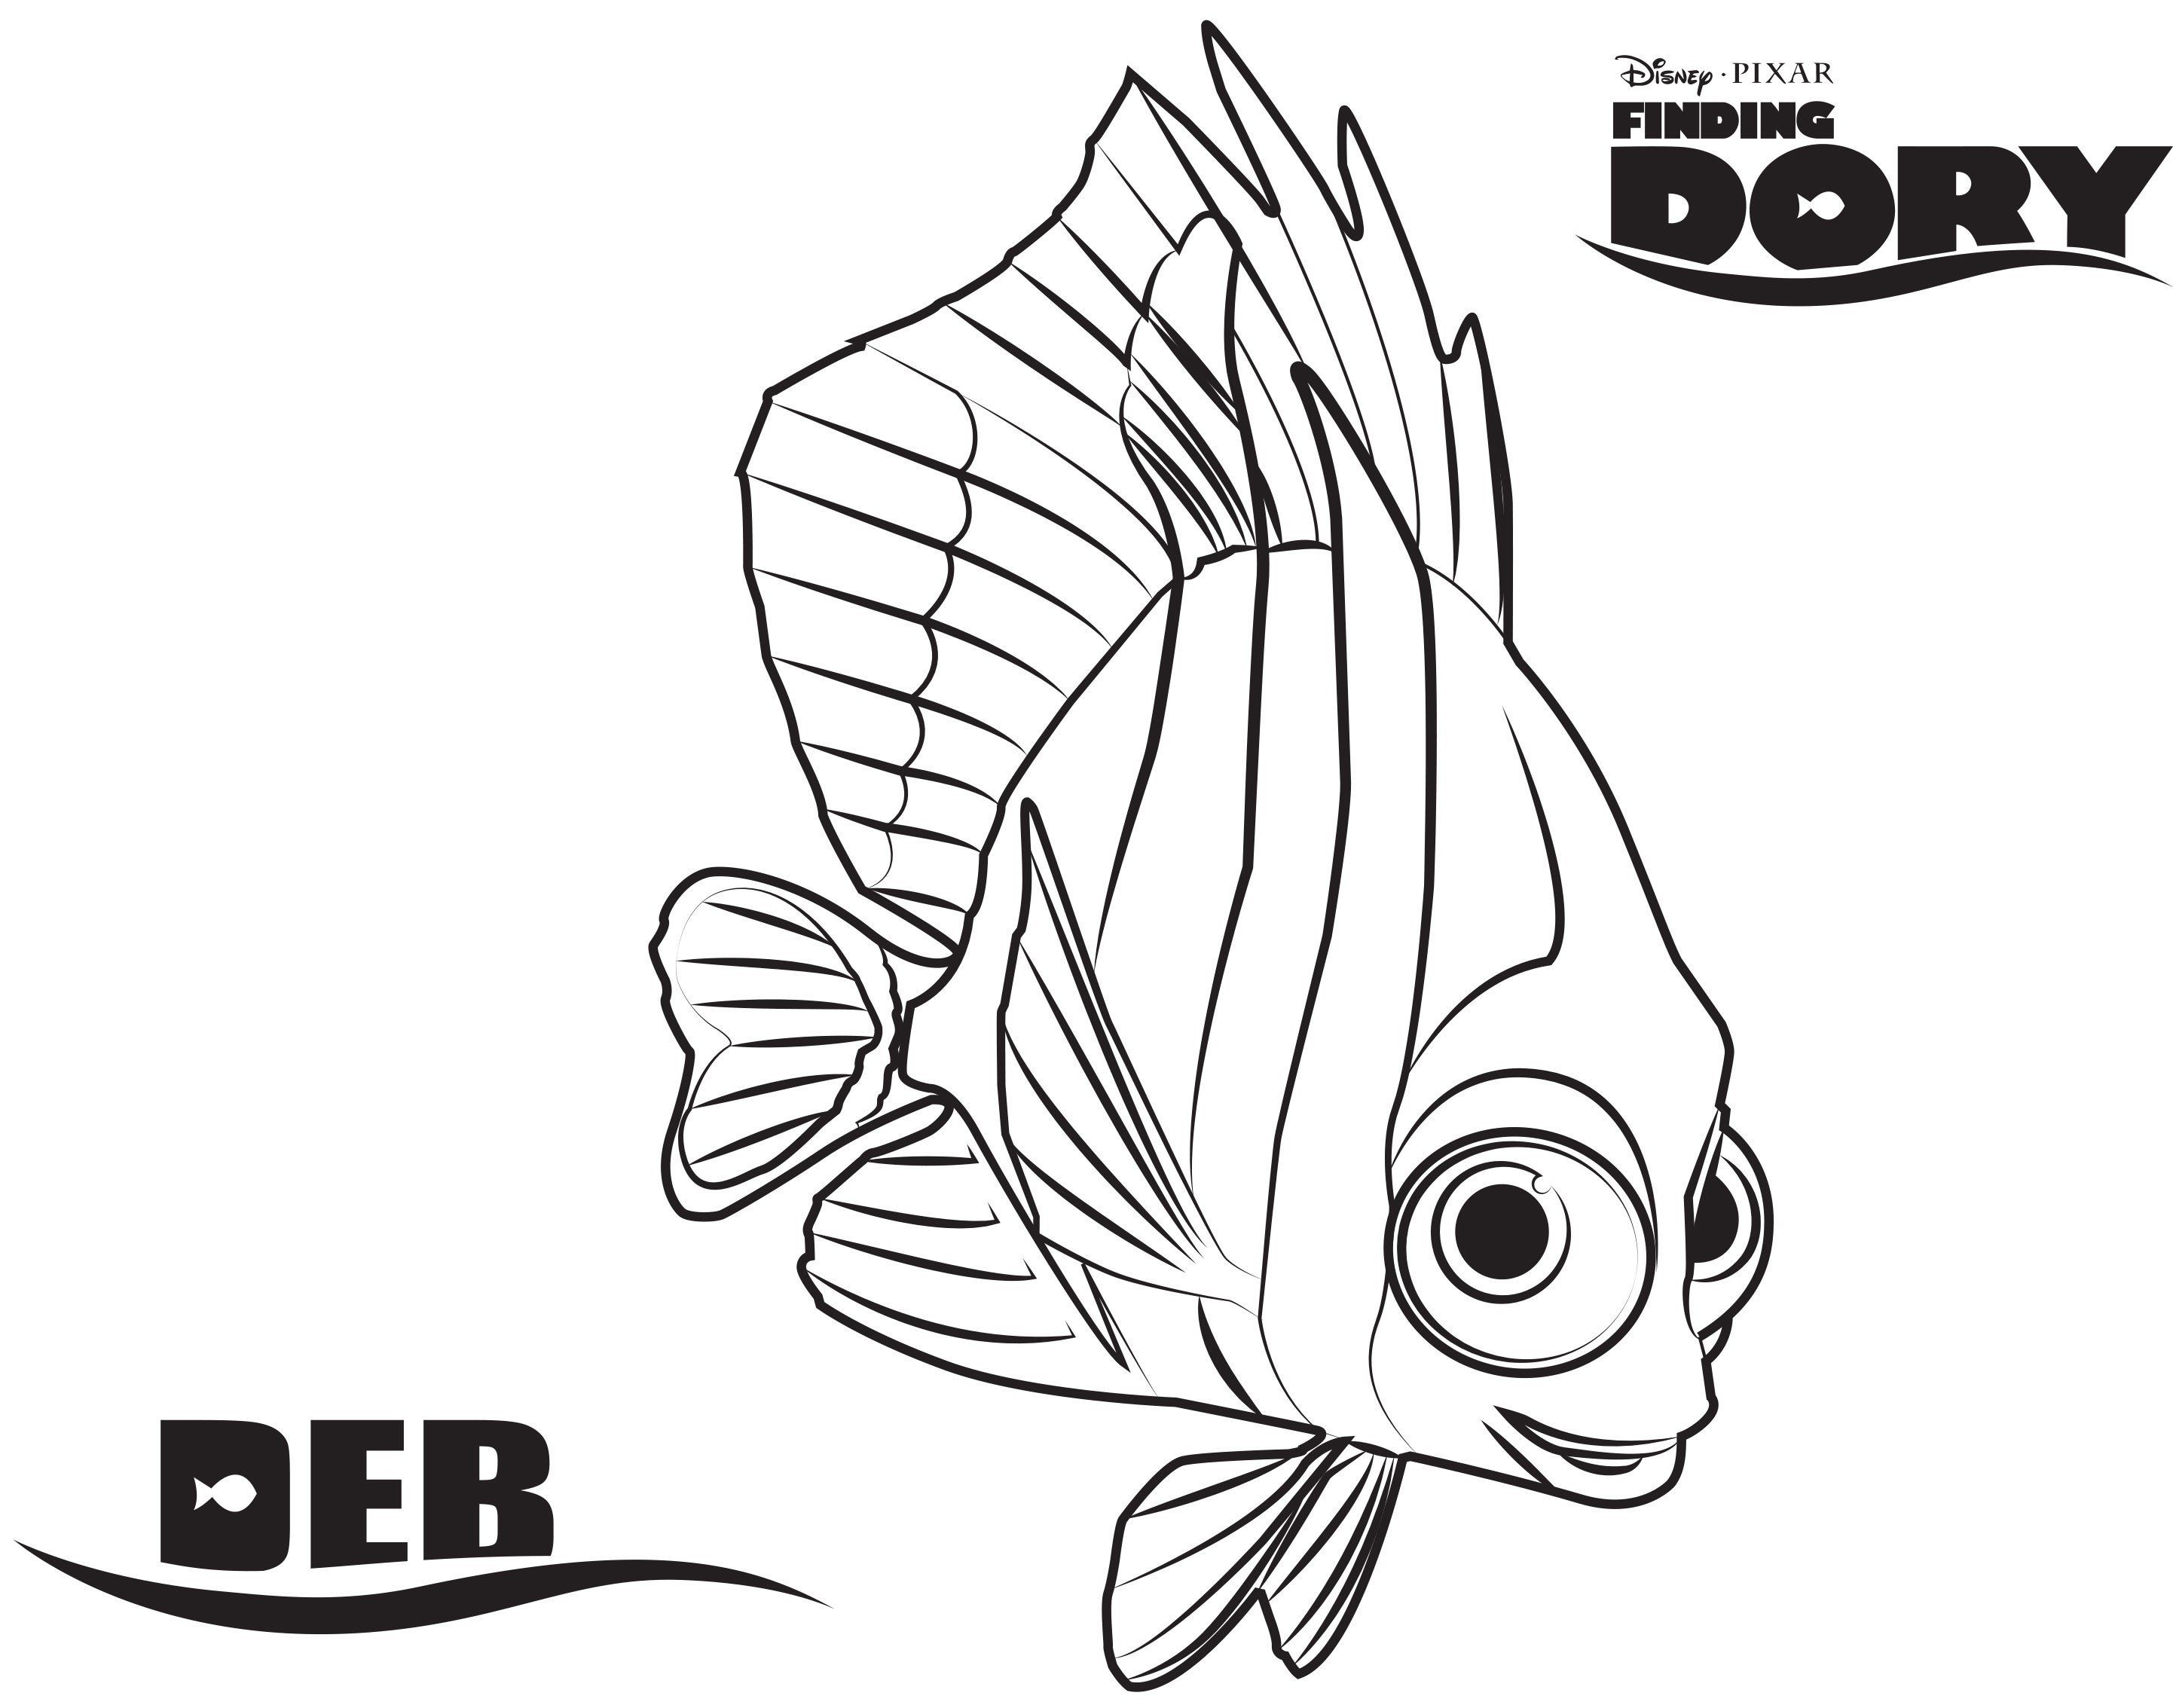 Free Printable Finding Dory Coloring Pages